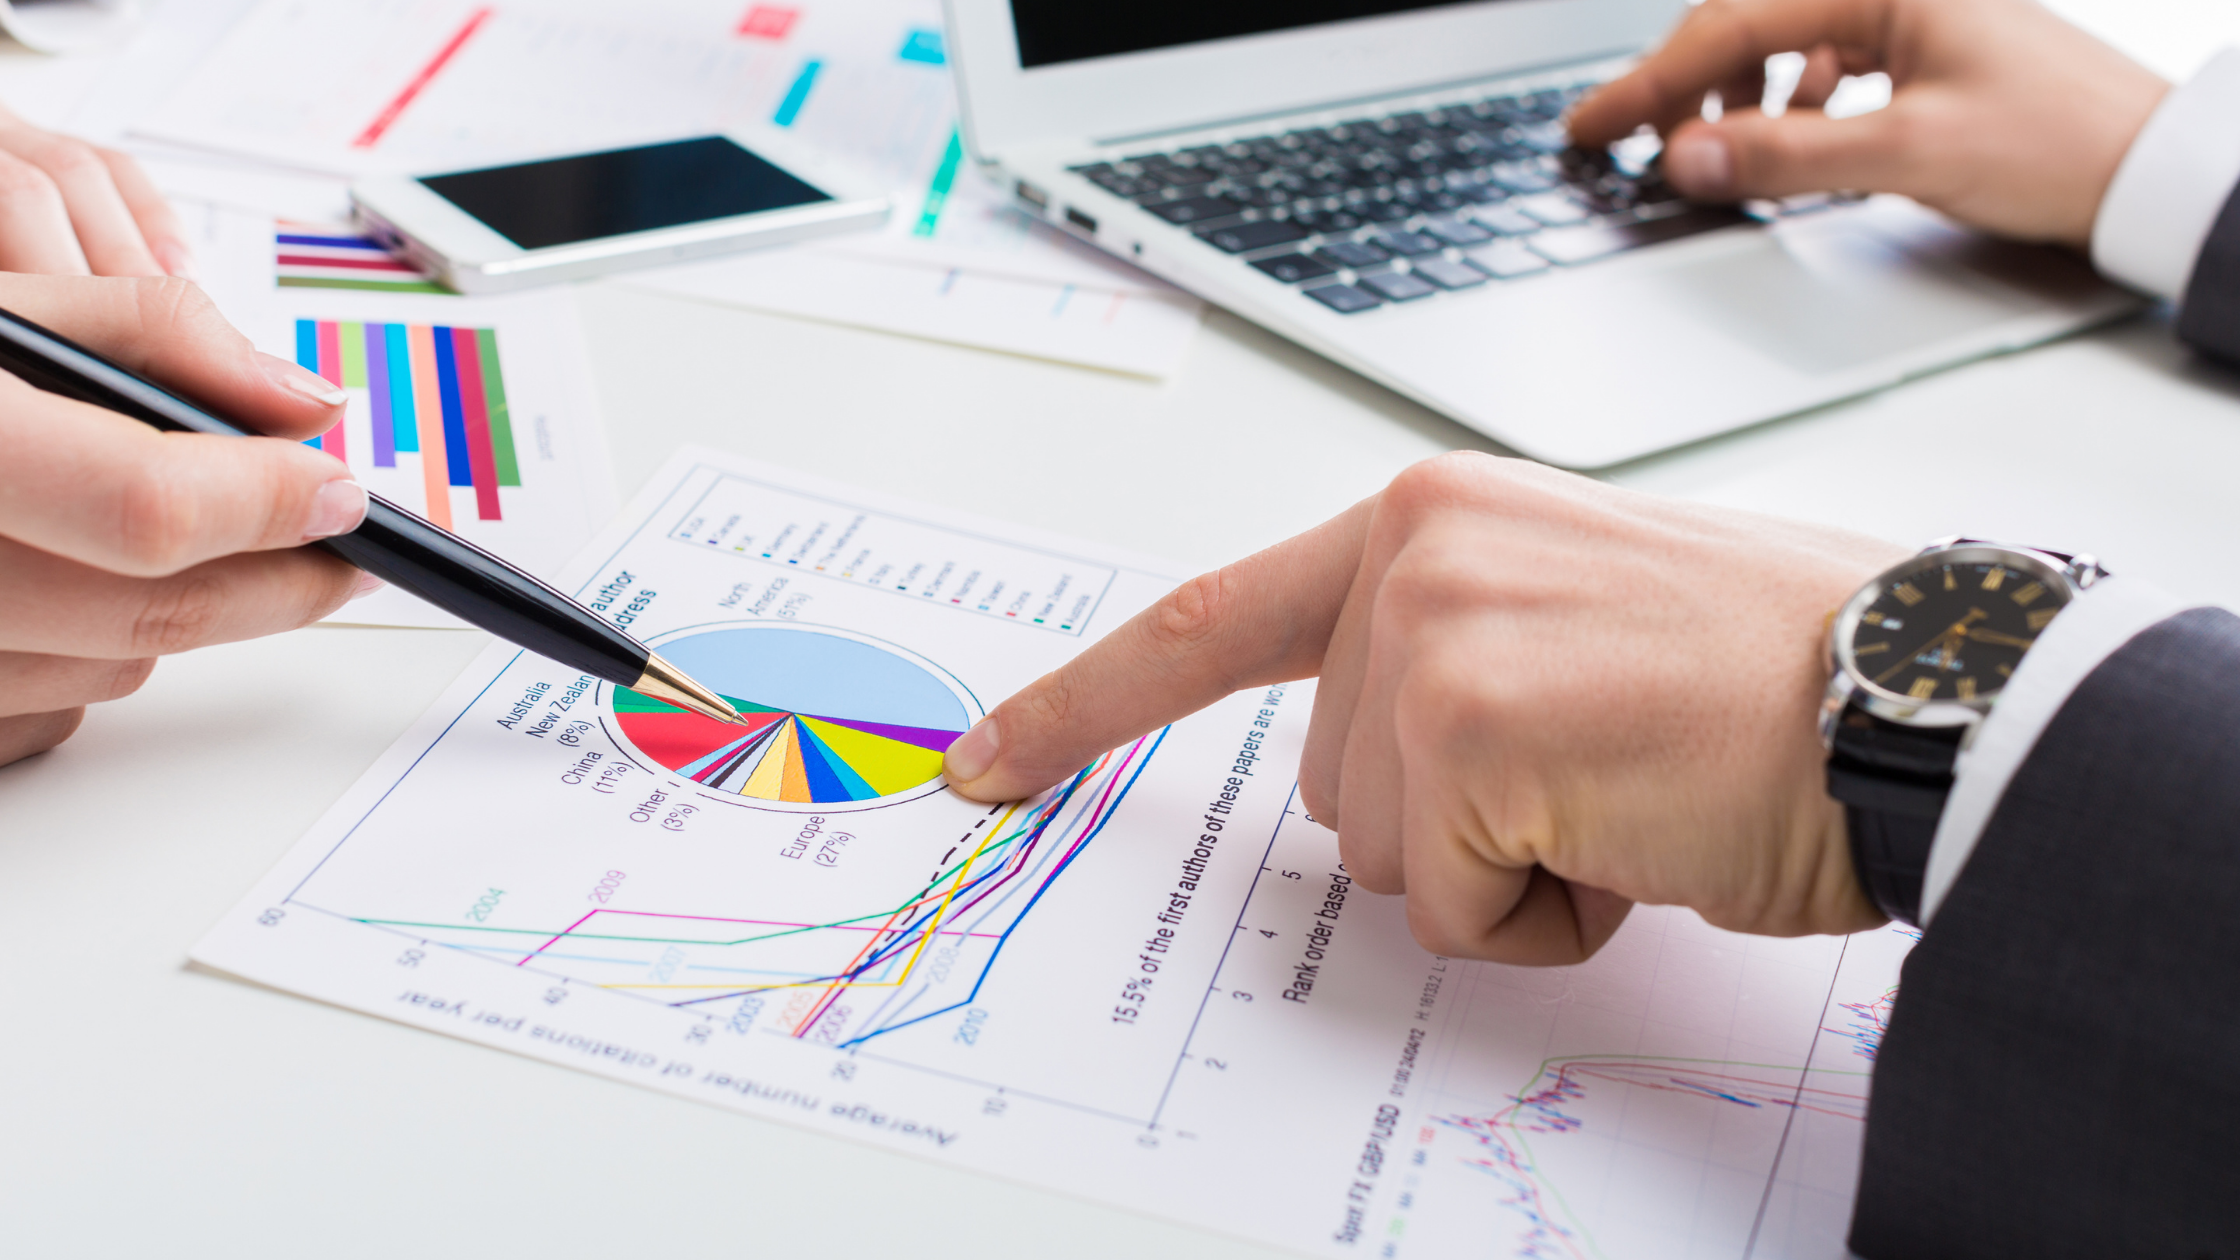 5 easy ways to cut costs in your small business